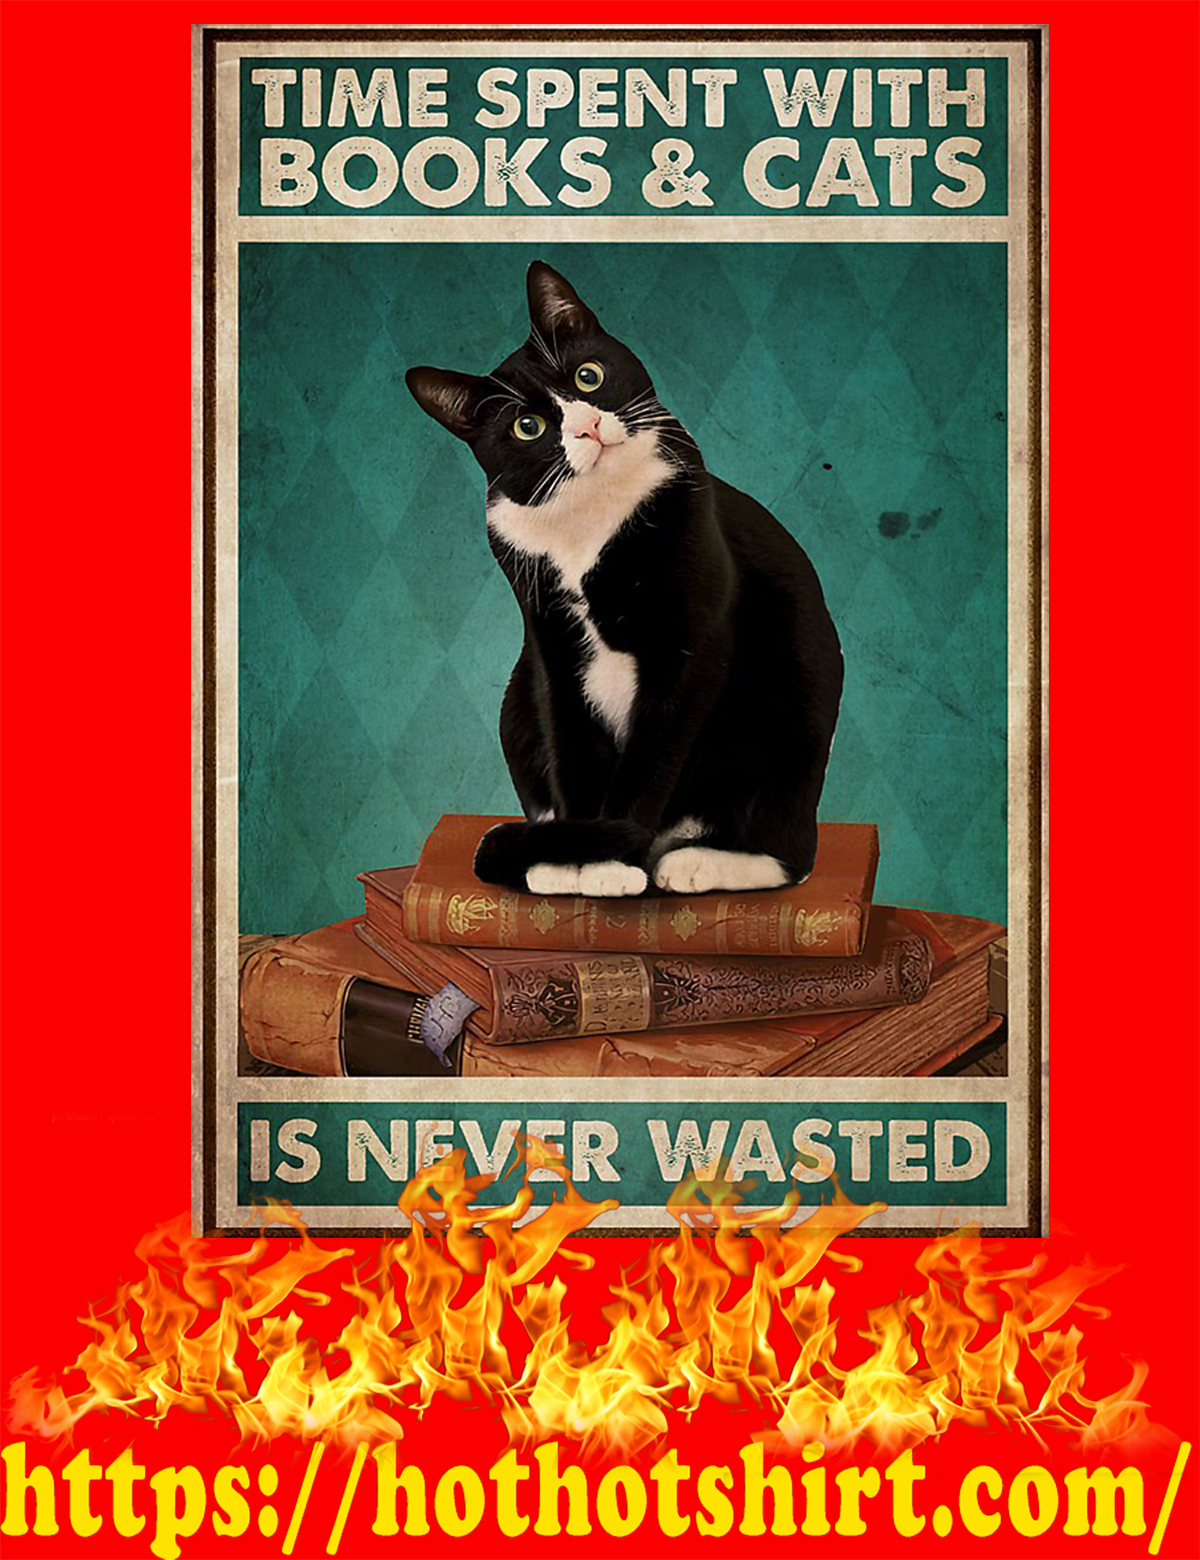 Time spent with books and cats is never wasted poster - A3